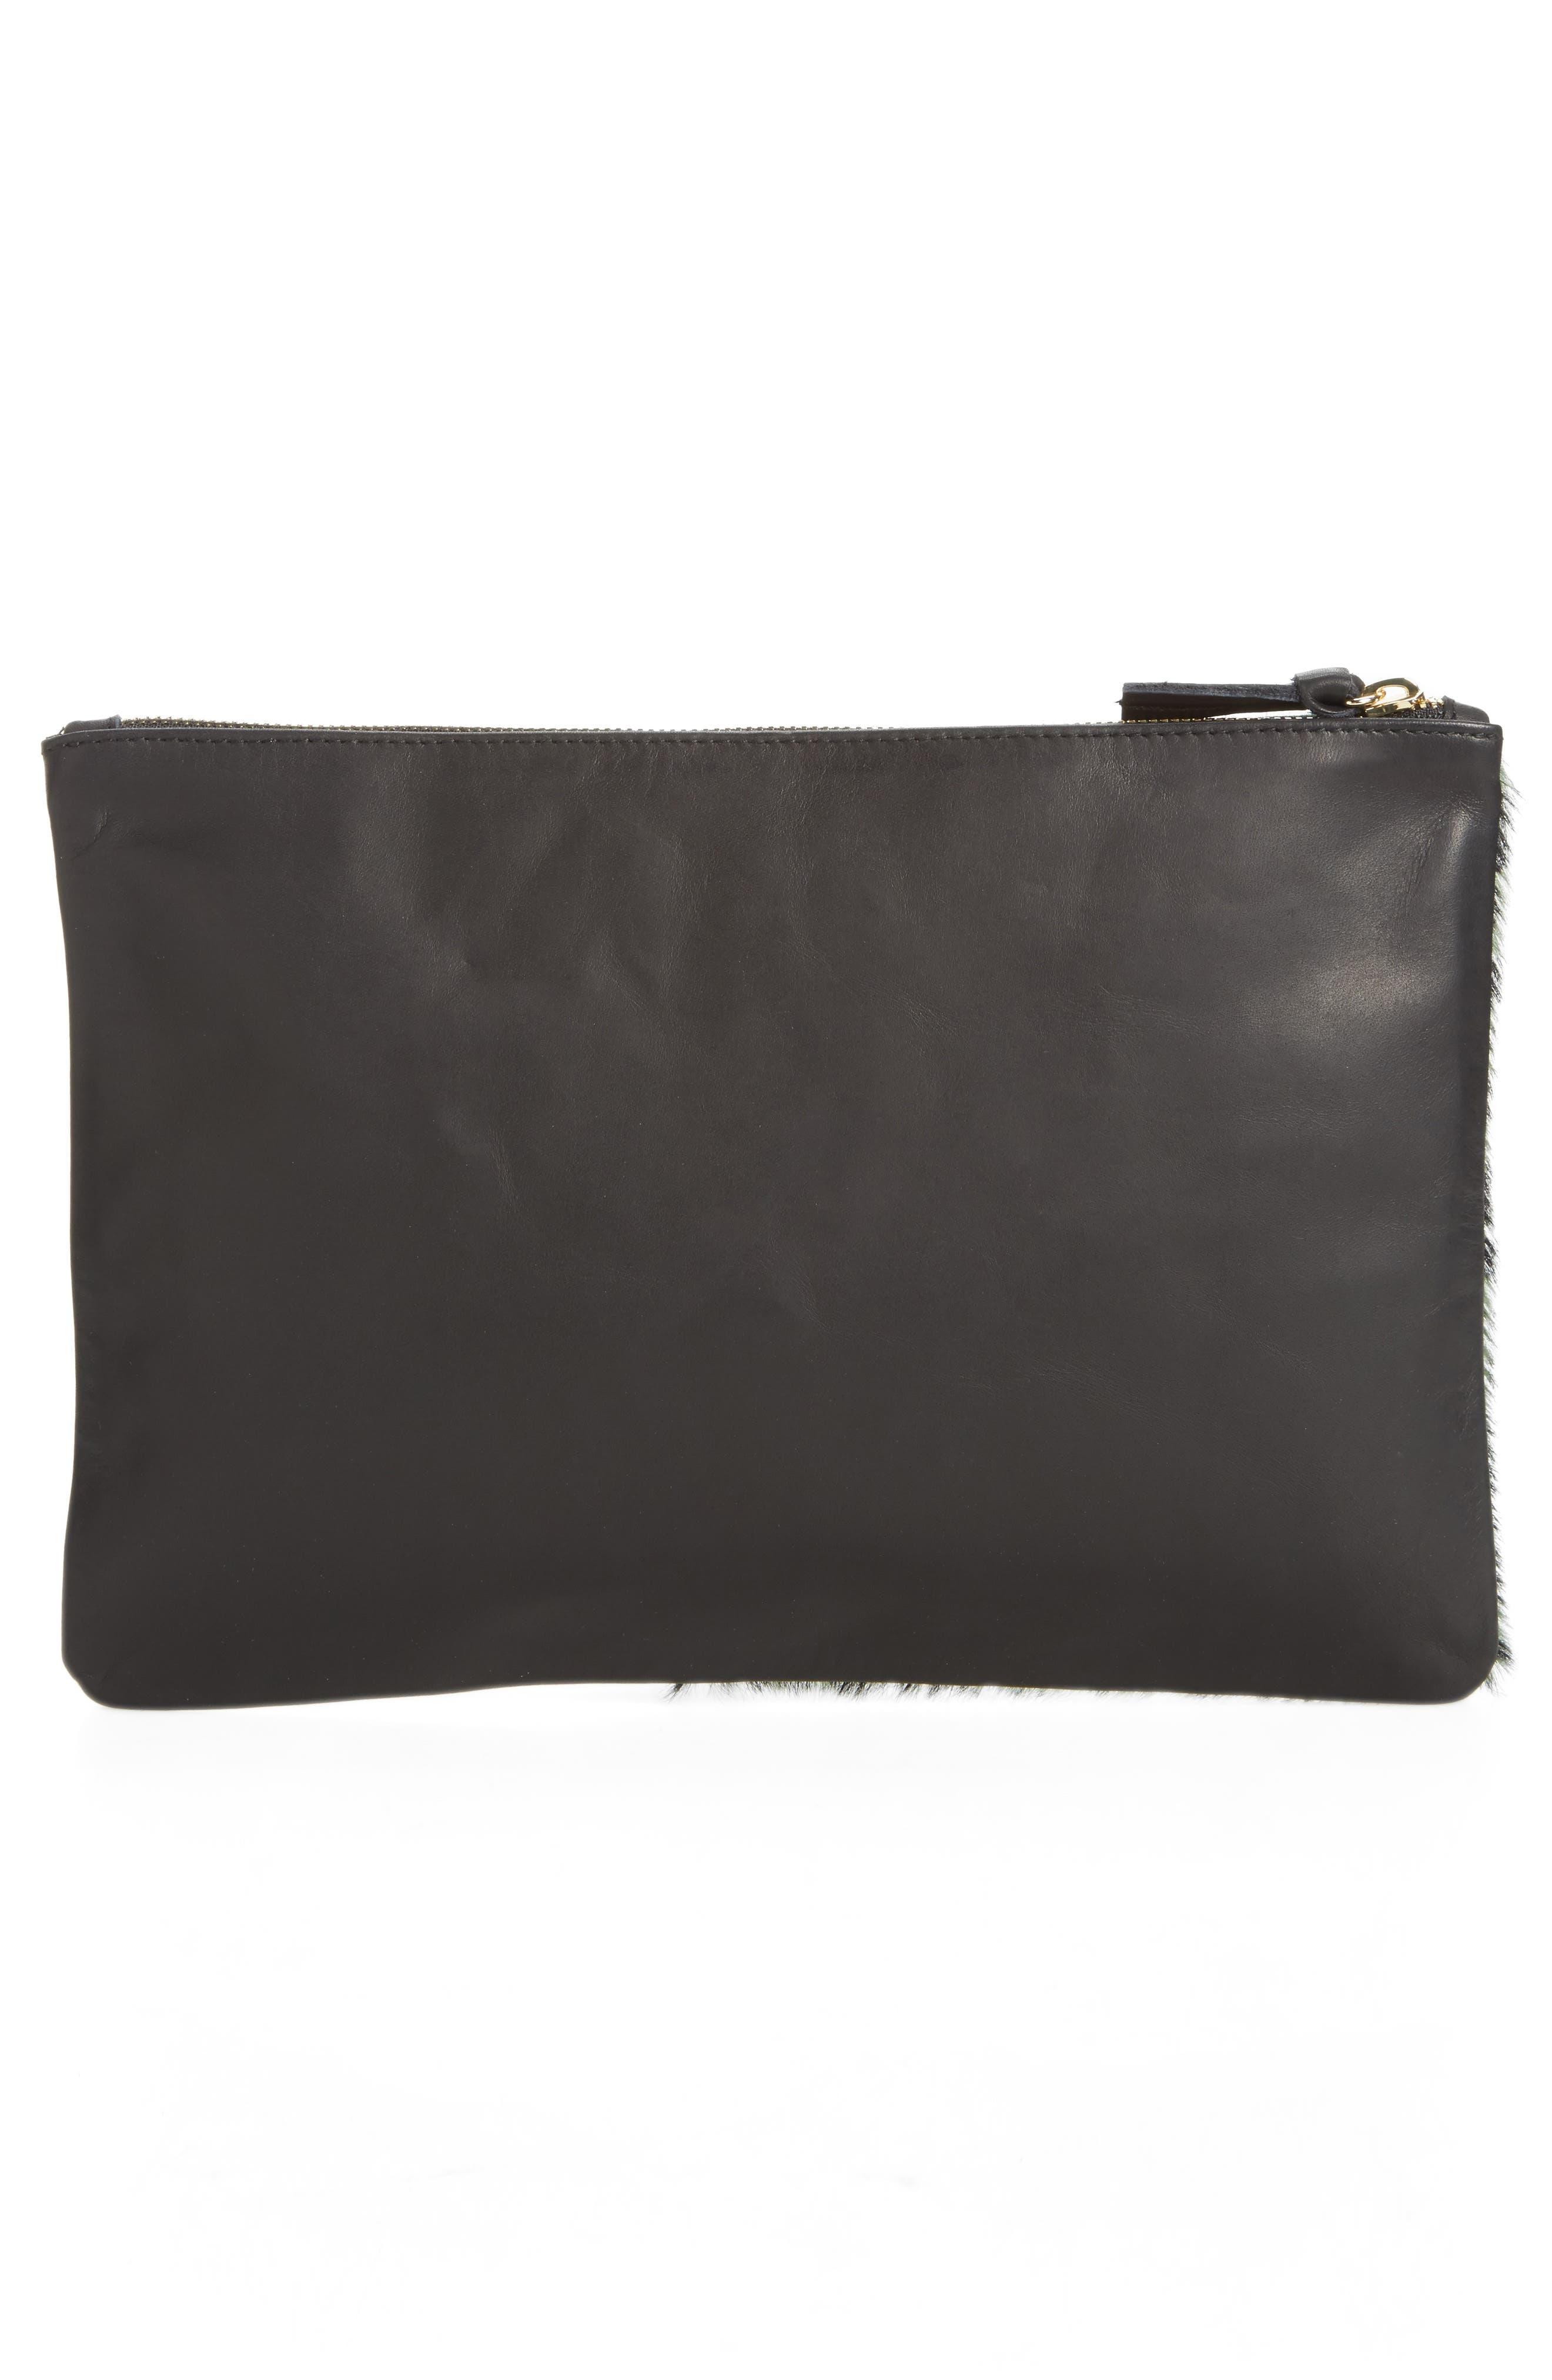 Colorblock Leather & Genuine Calf Hair Flat Clutch,                             Alternate thumbnail 3, color,